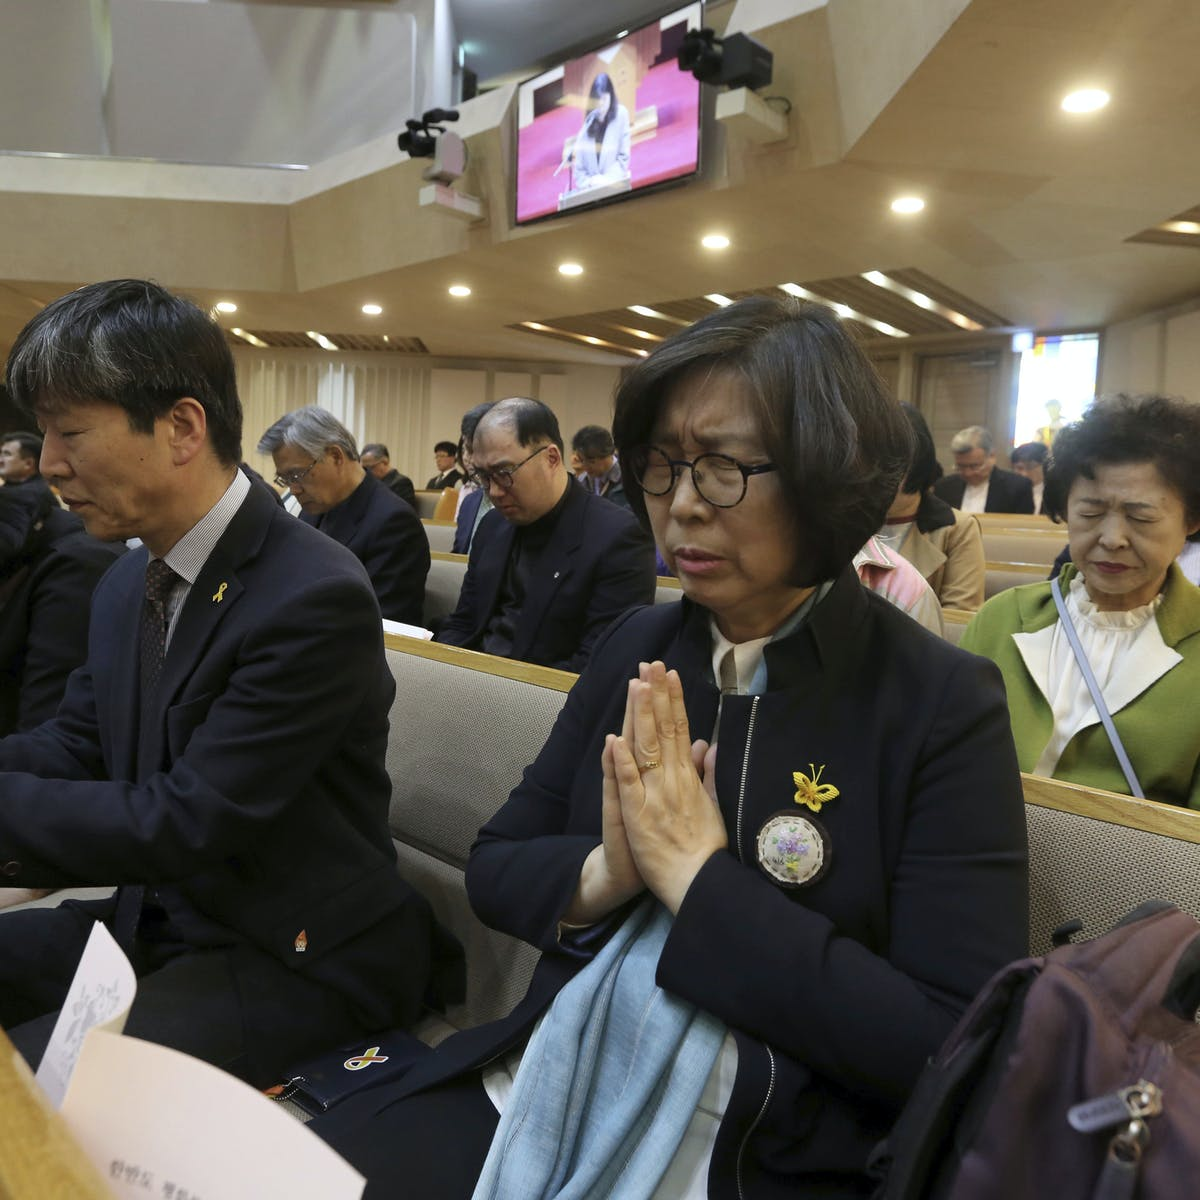 For many South Korean Christians, reunification with the North is a